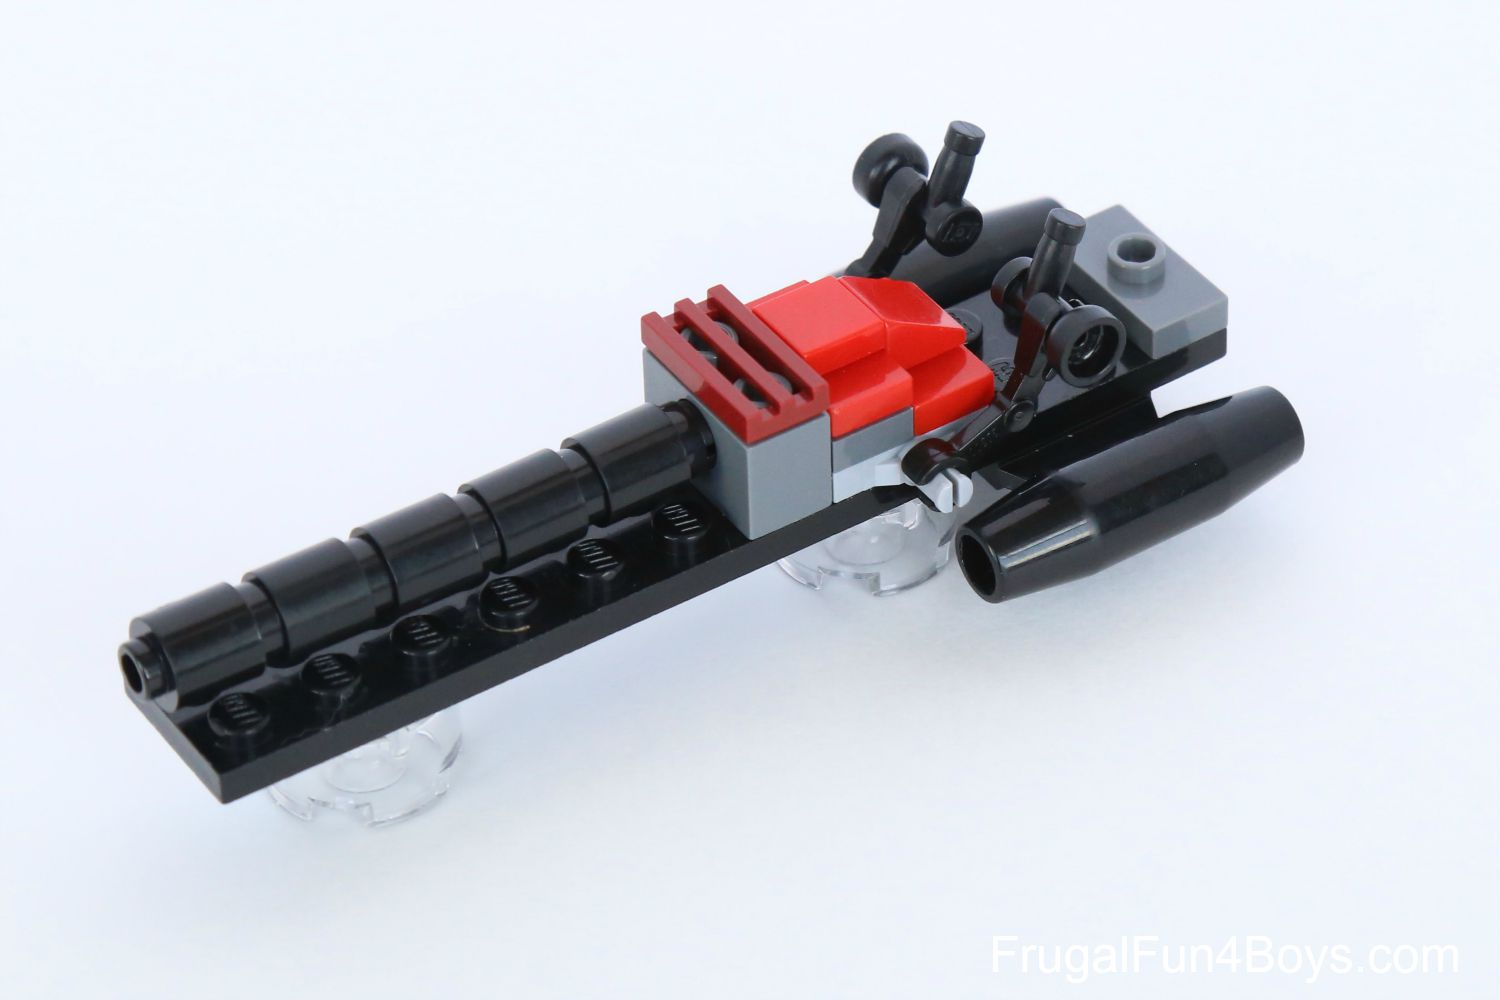 lego how to build cool guns